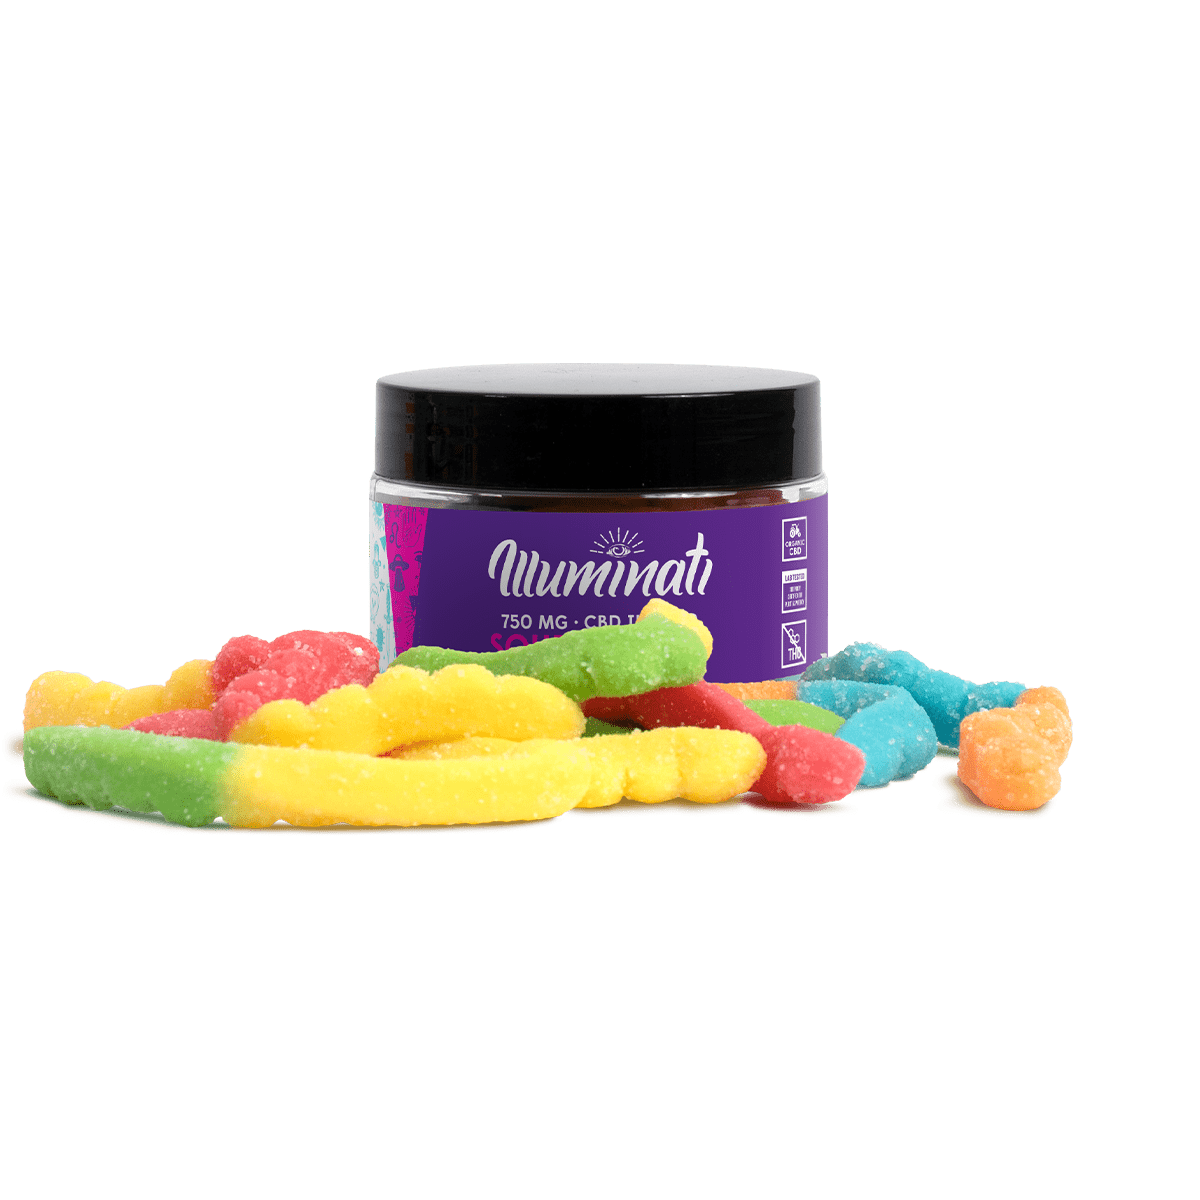 Illuminati CBD Sour Worms 750mg